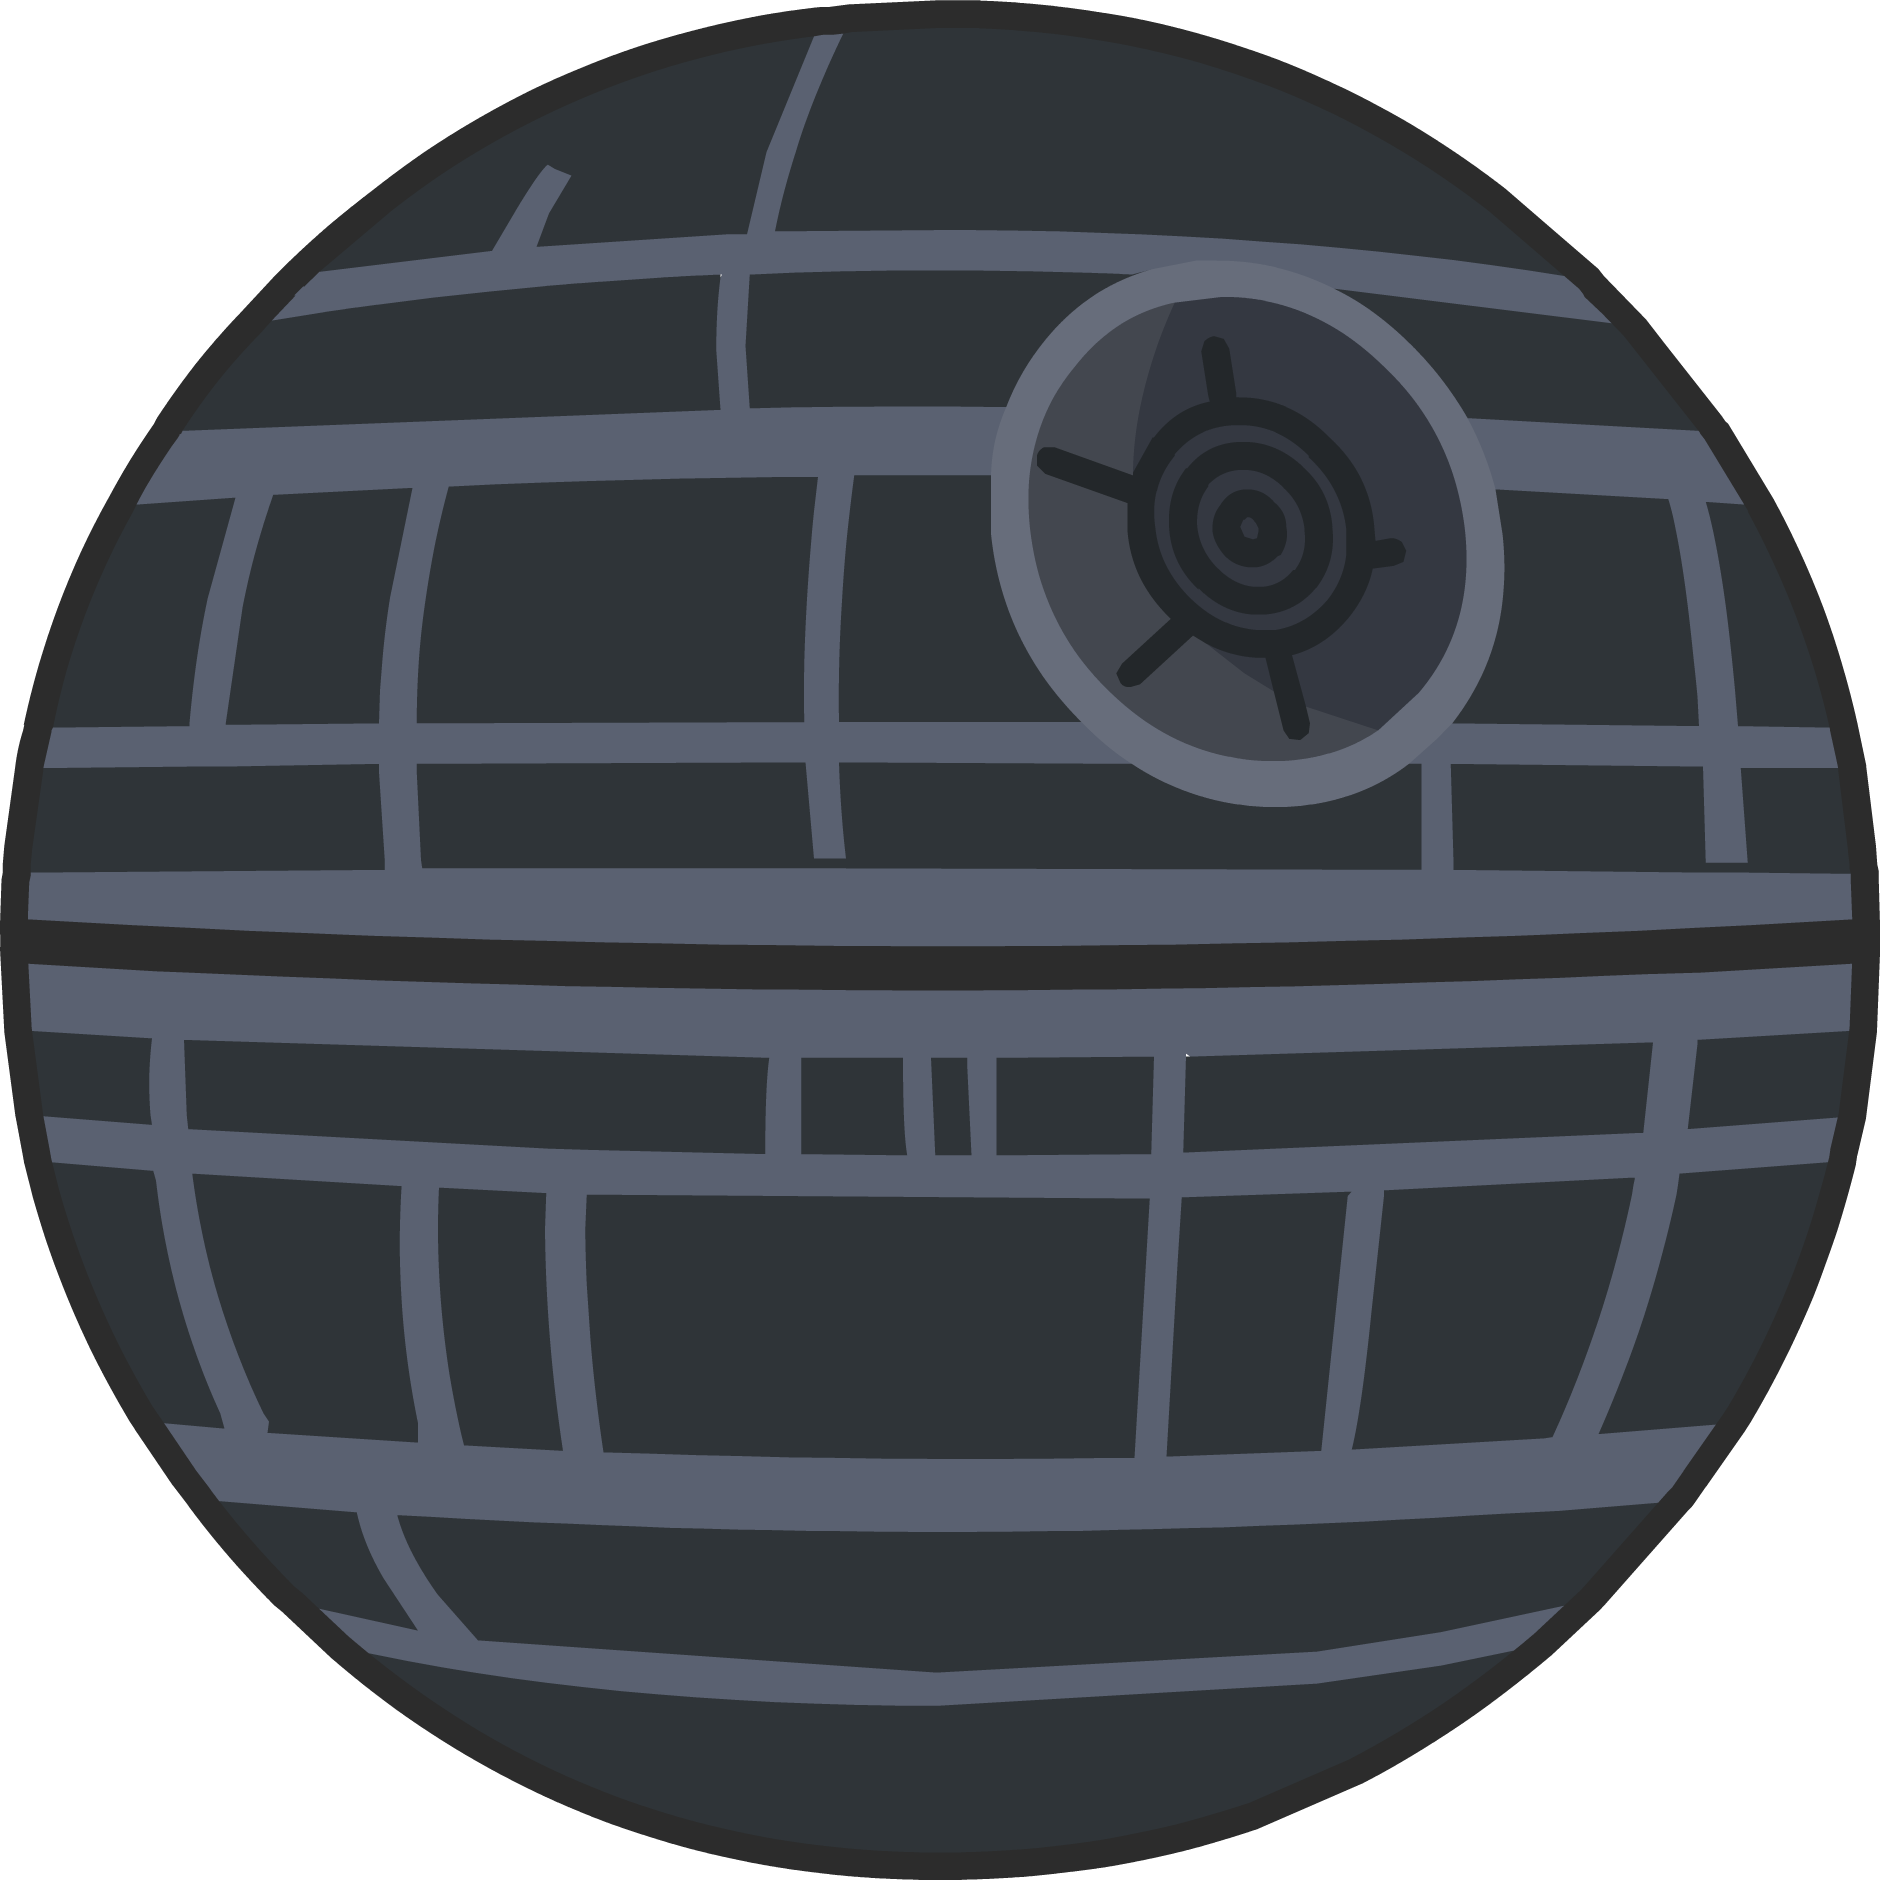 Anakin Skywalker Han Solo Death Star Star Wars Drawing.